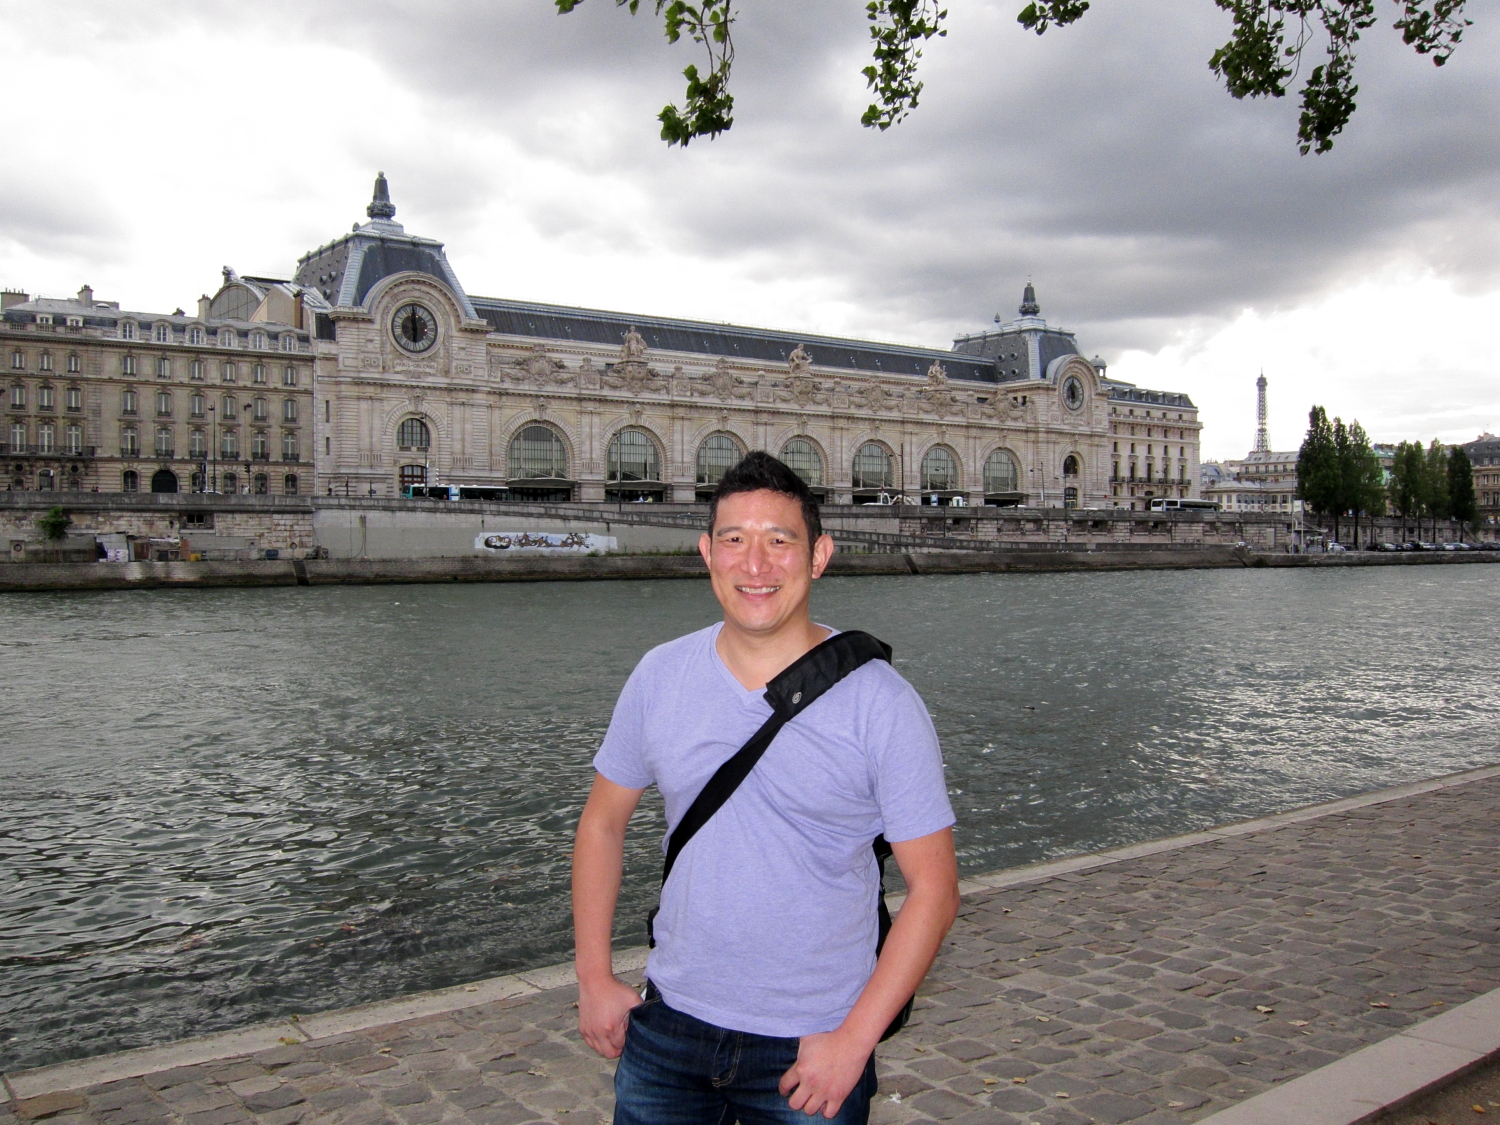 Gerry with the Musée d'Orsay